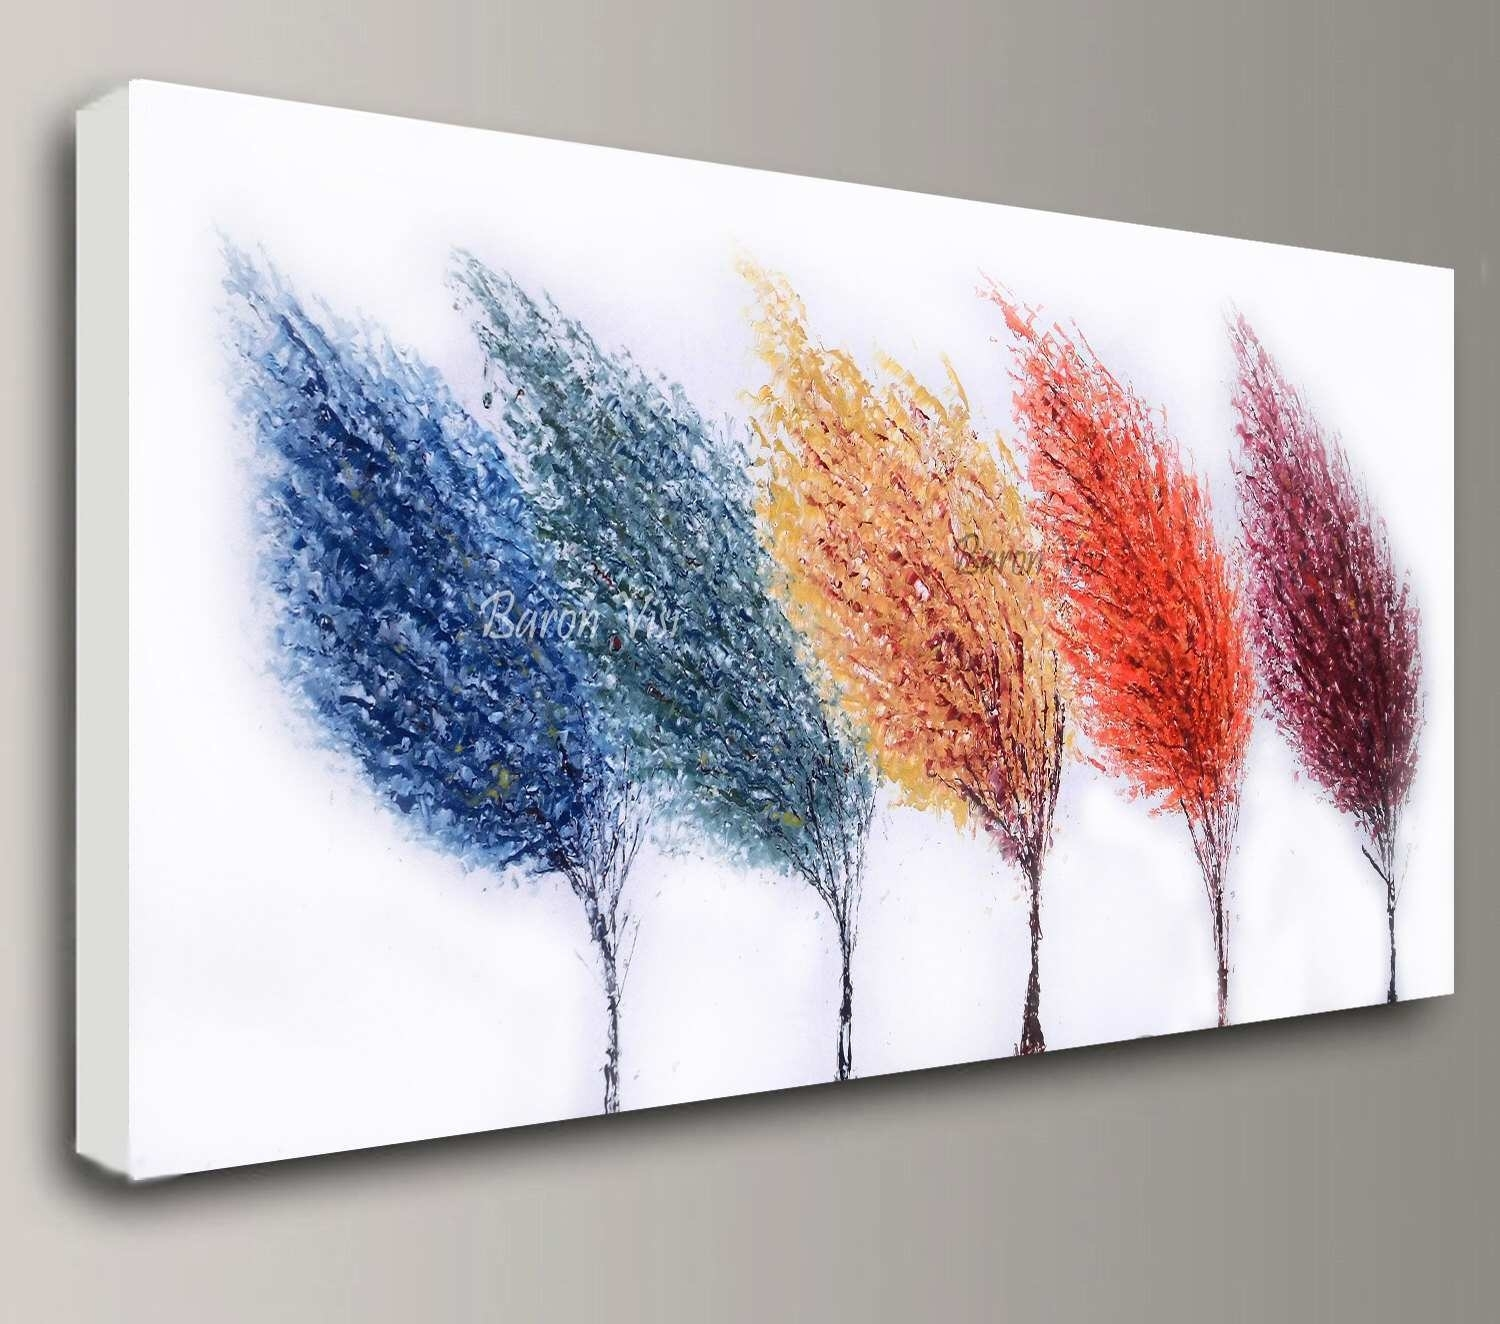 Abstract Canvas Wall Art Best Of Abstract Painting Acrylic Painting Intended For Current Acrylic Wall Art (View 18 of 20)